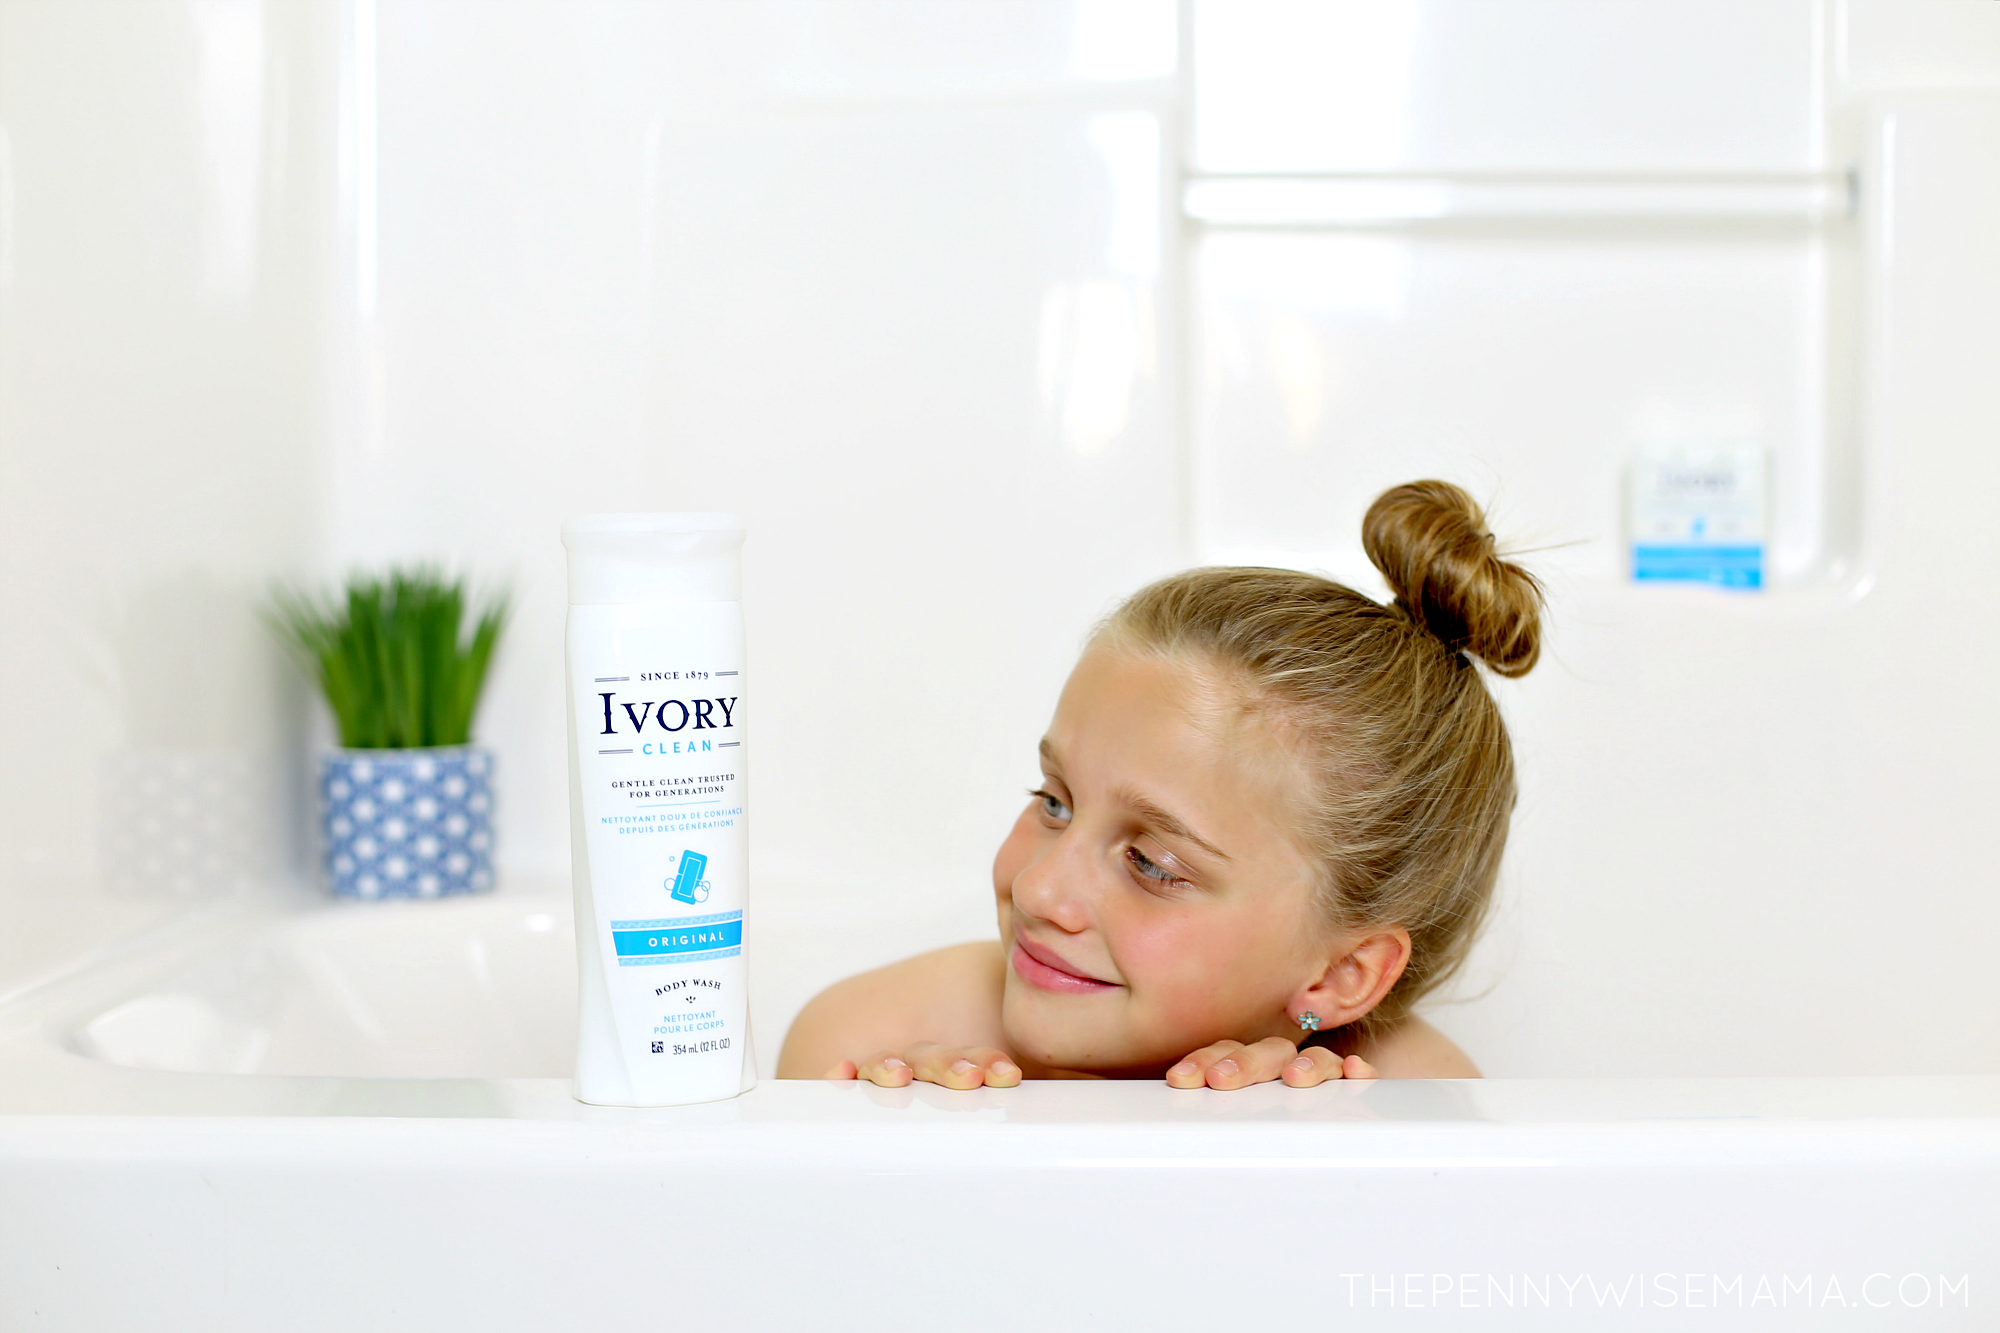 Ivory Body Wash - gentle soap for sensitive skin